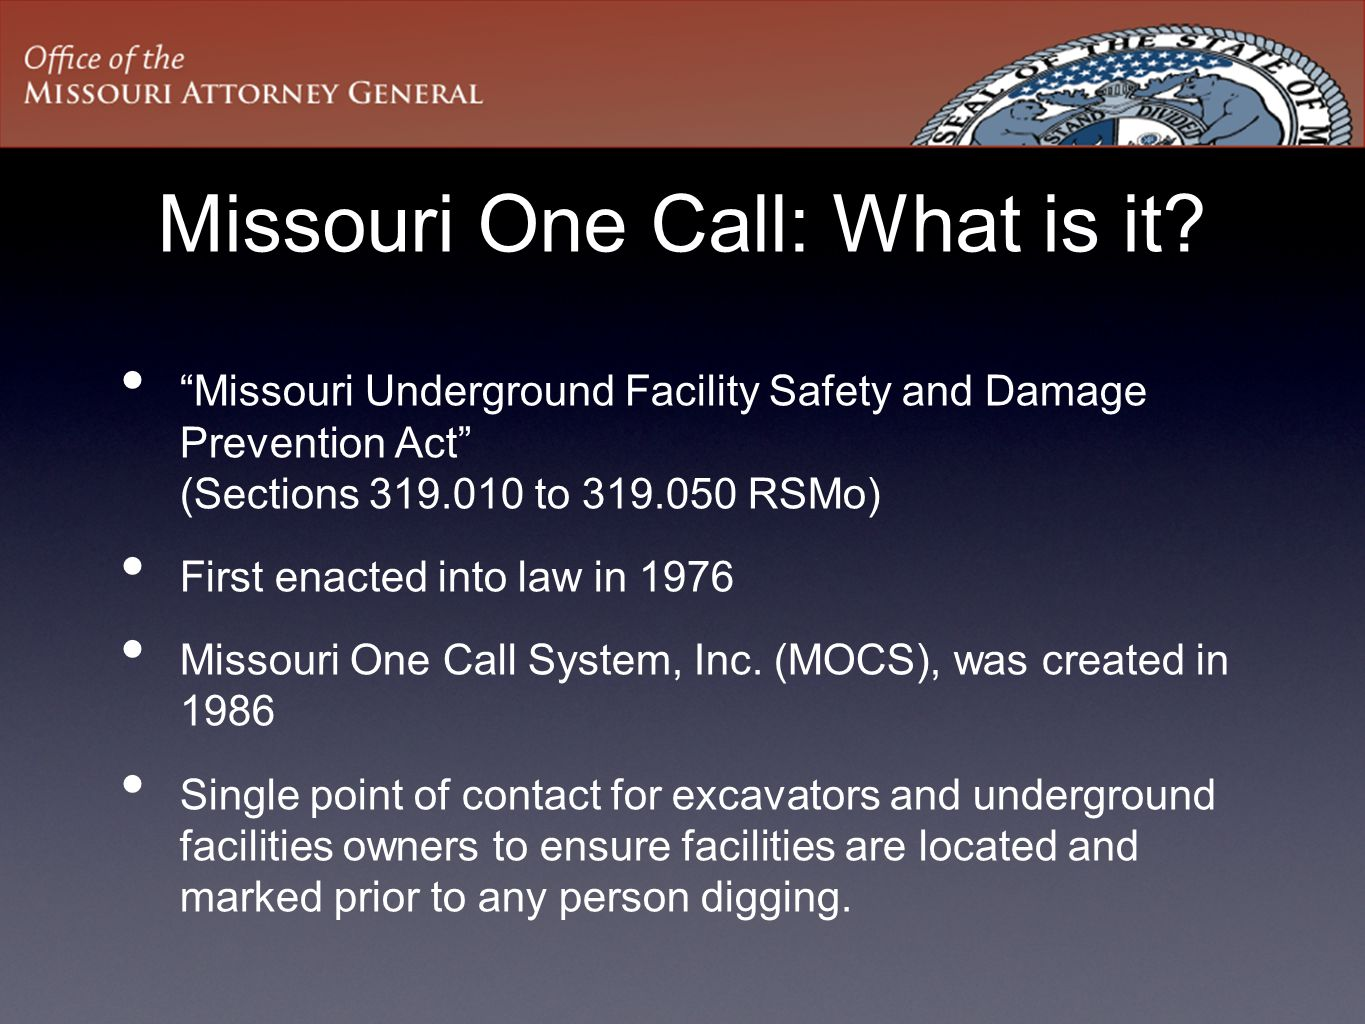 Missouri One Call: What is it